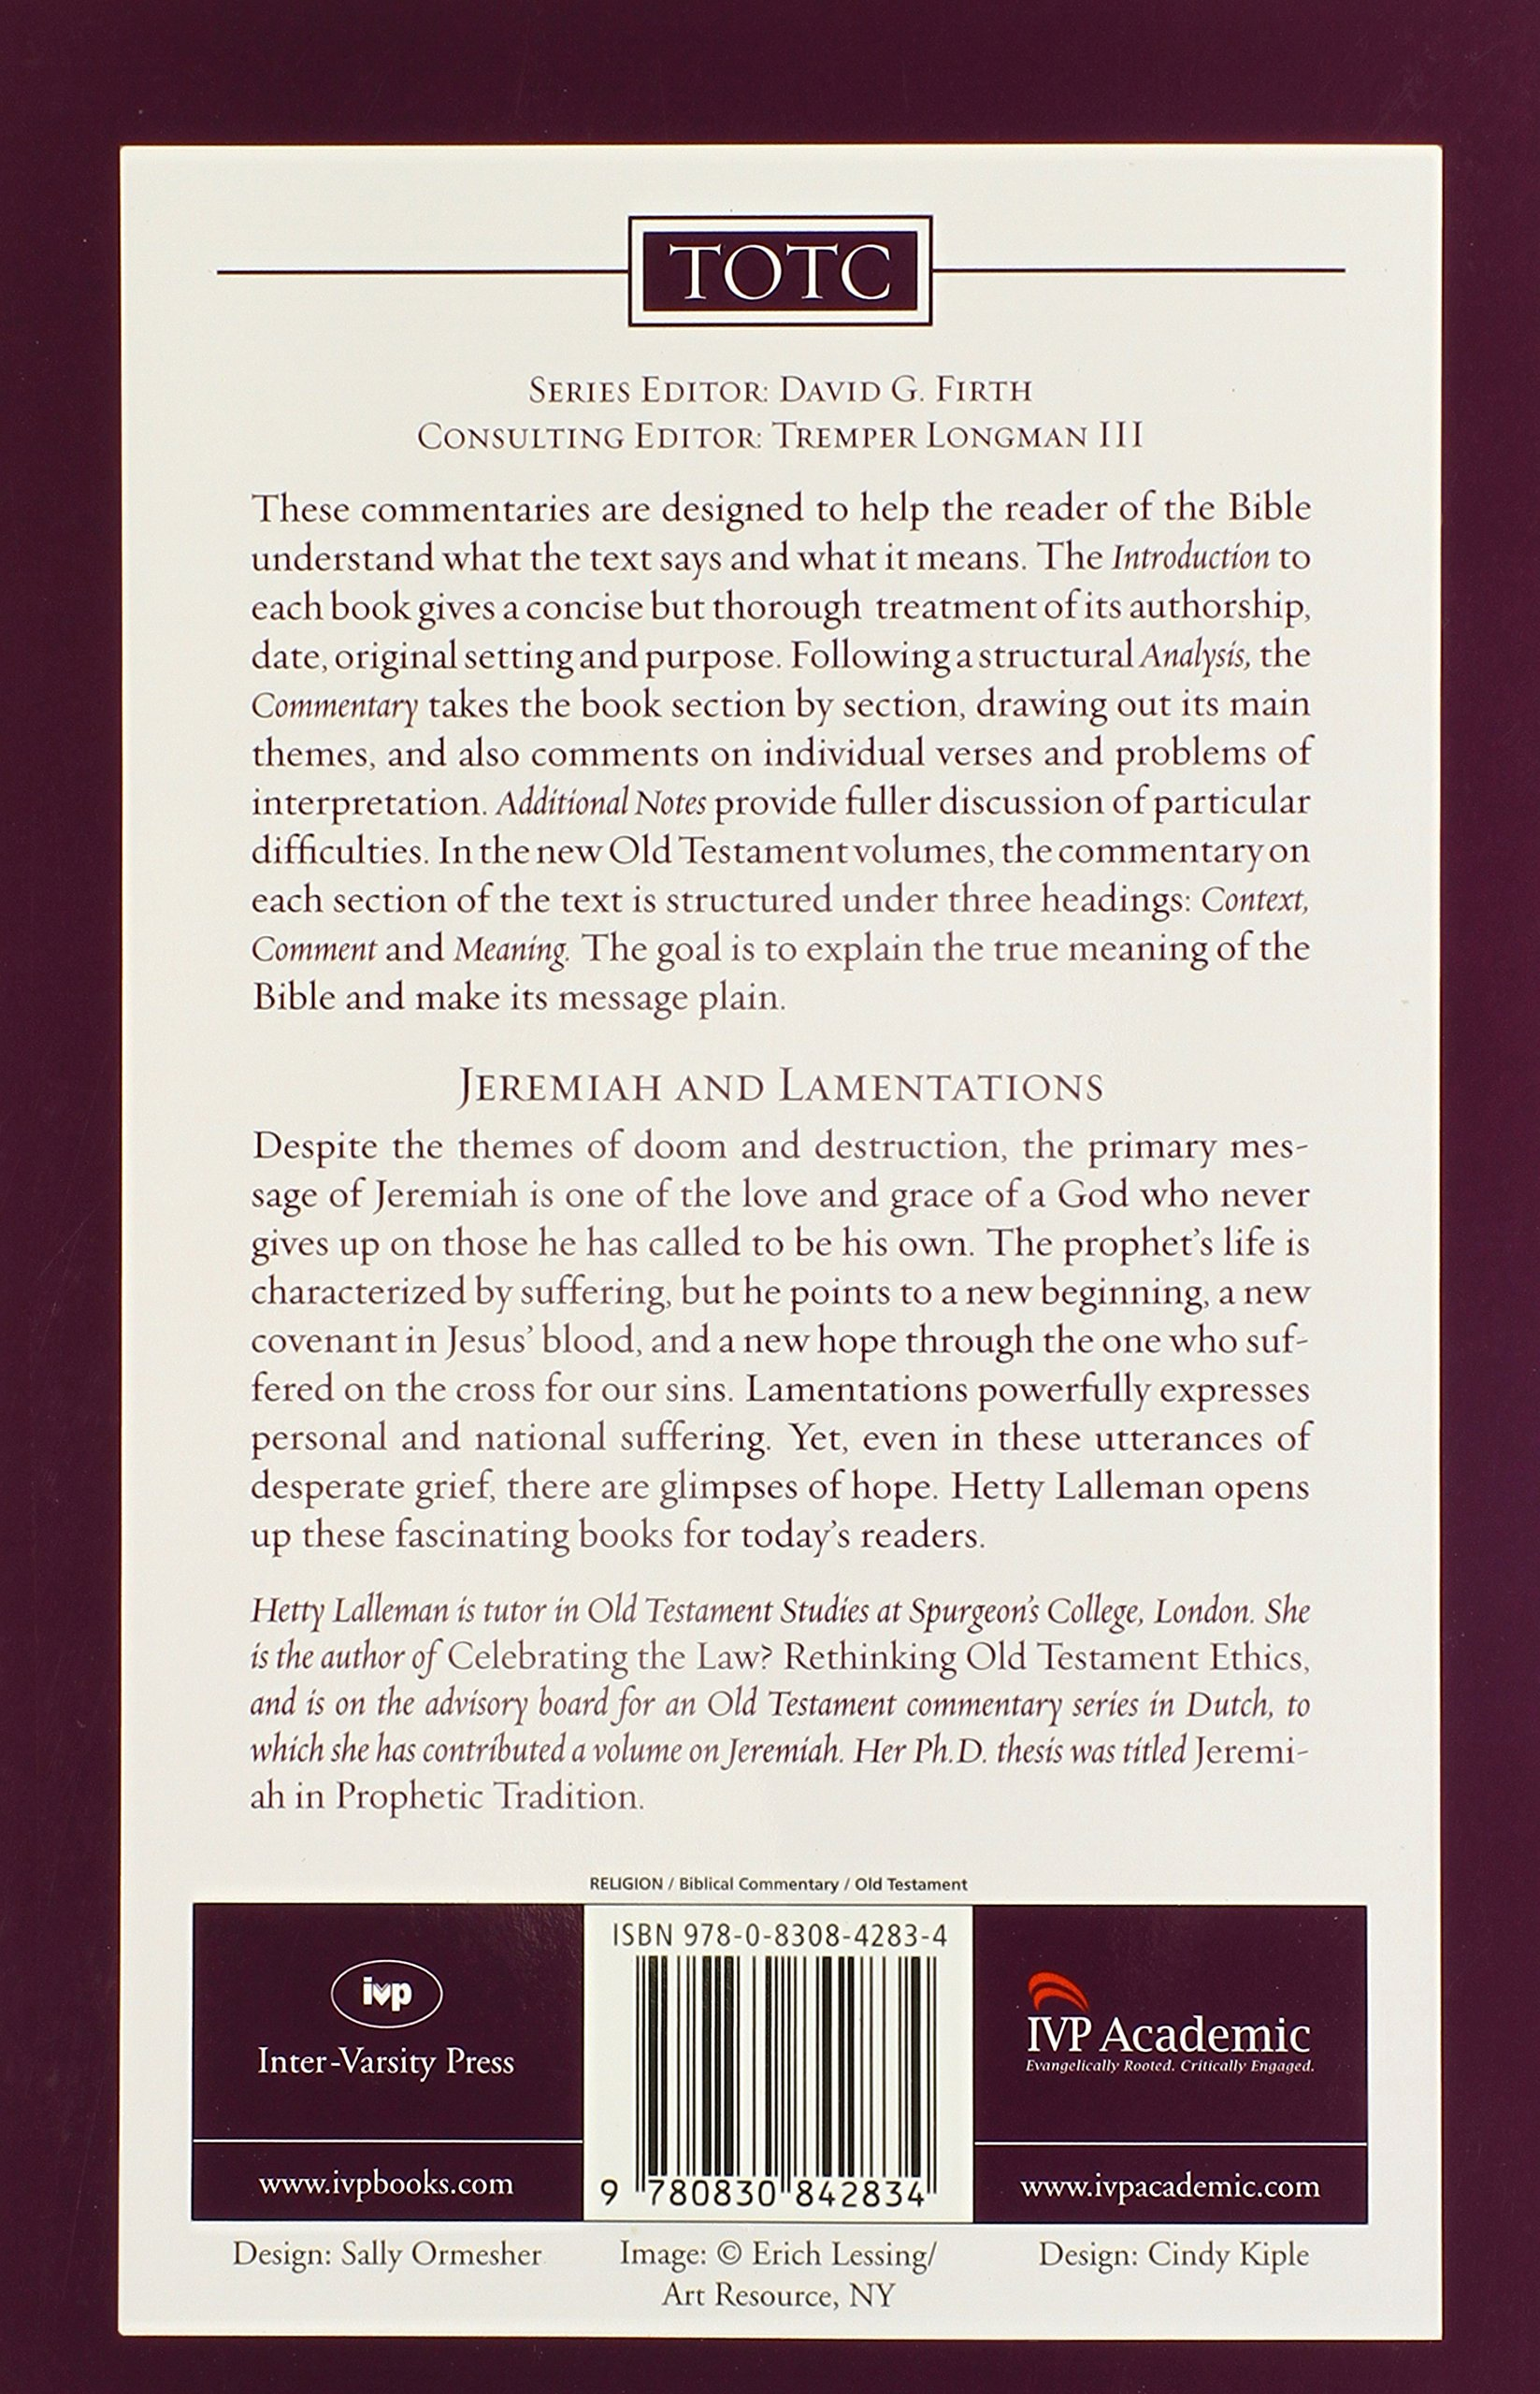 Jeremiah and lamentations tyndale old testament commentaries hetty lalleman 9780830842834 amazon com books